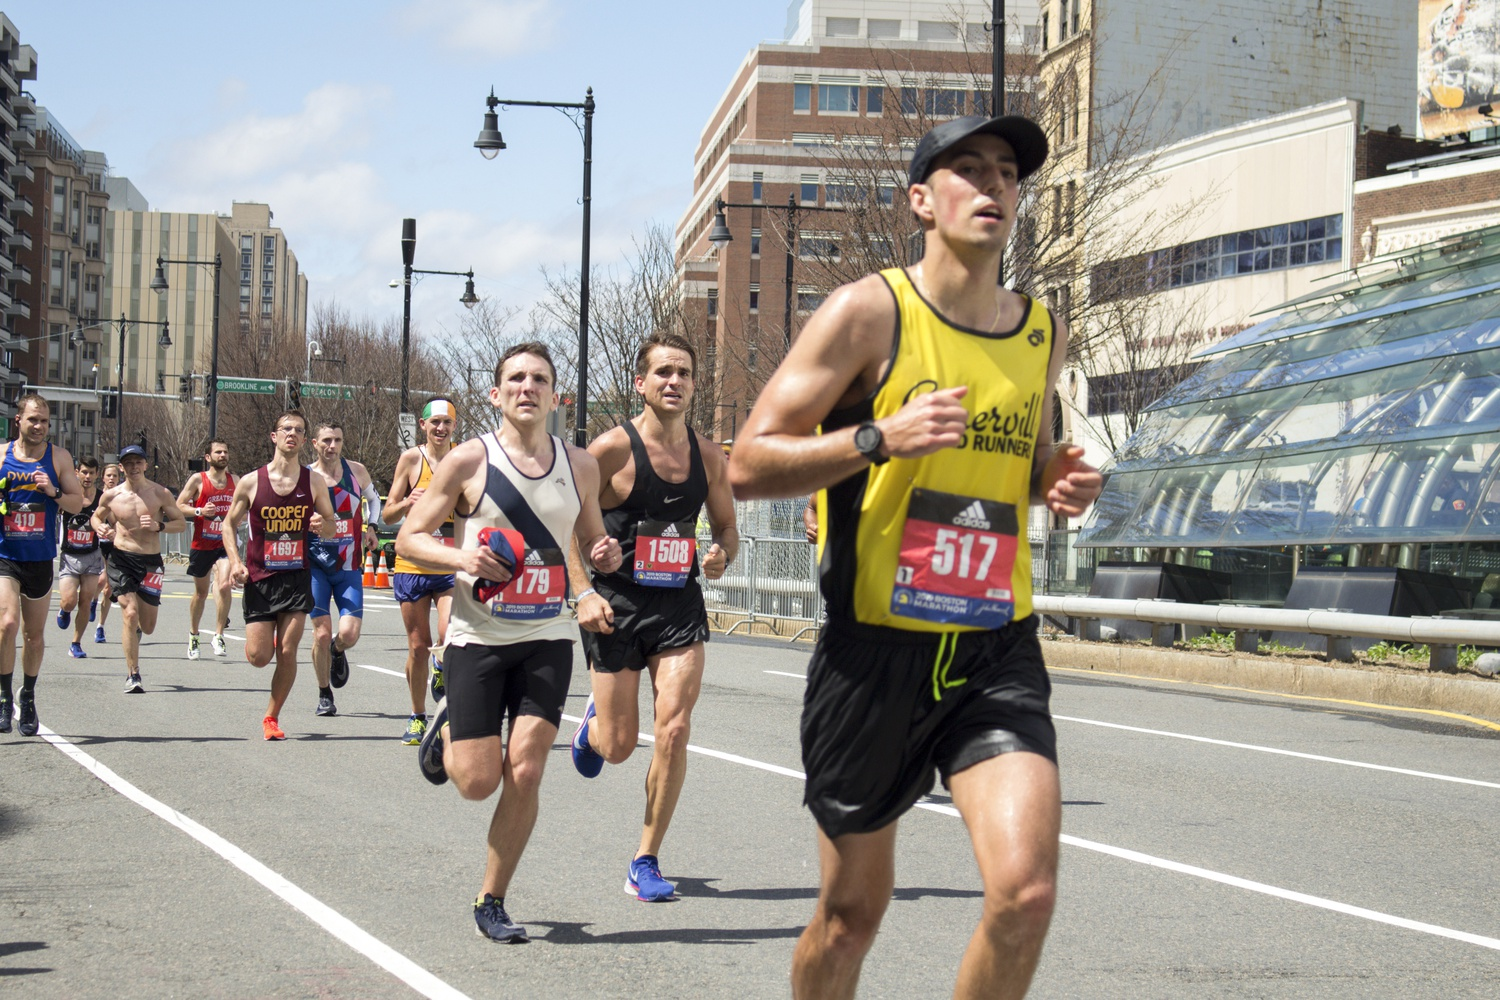 Early Boston Marathon runners faced good weather on Monday morning.